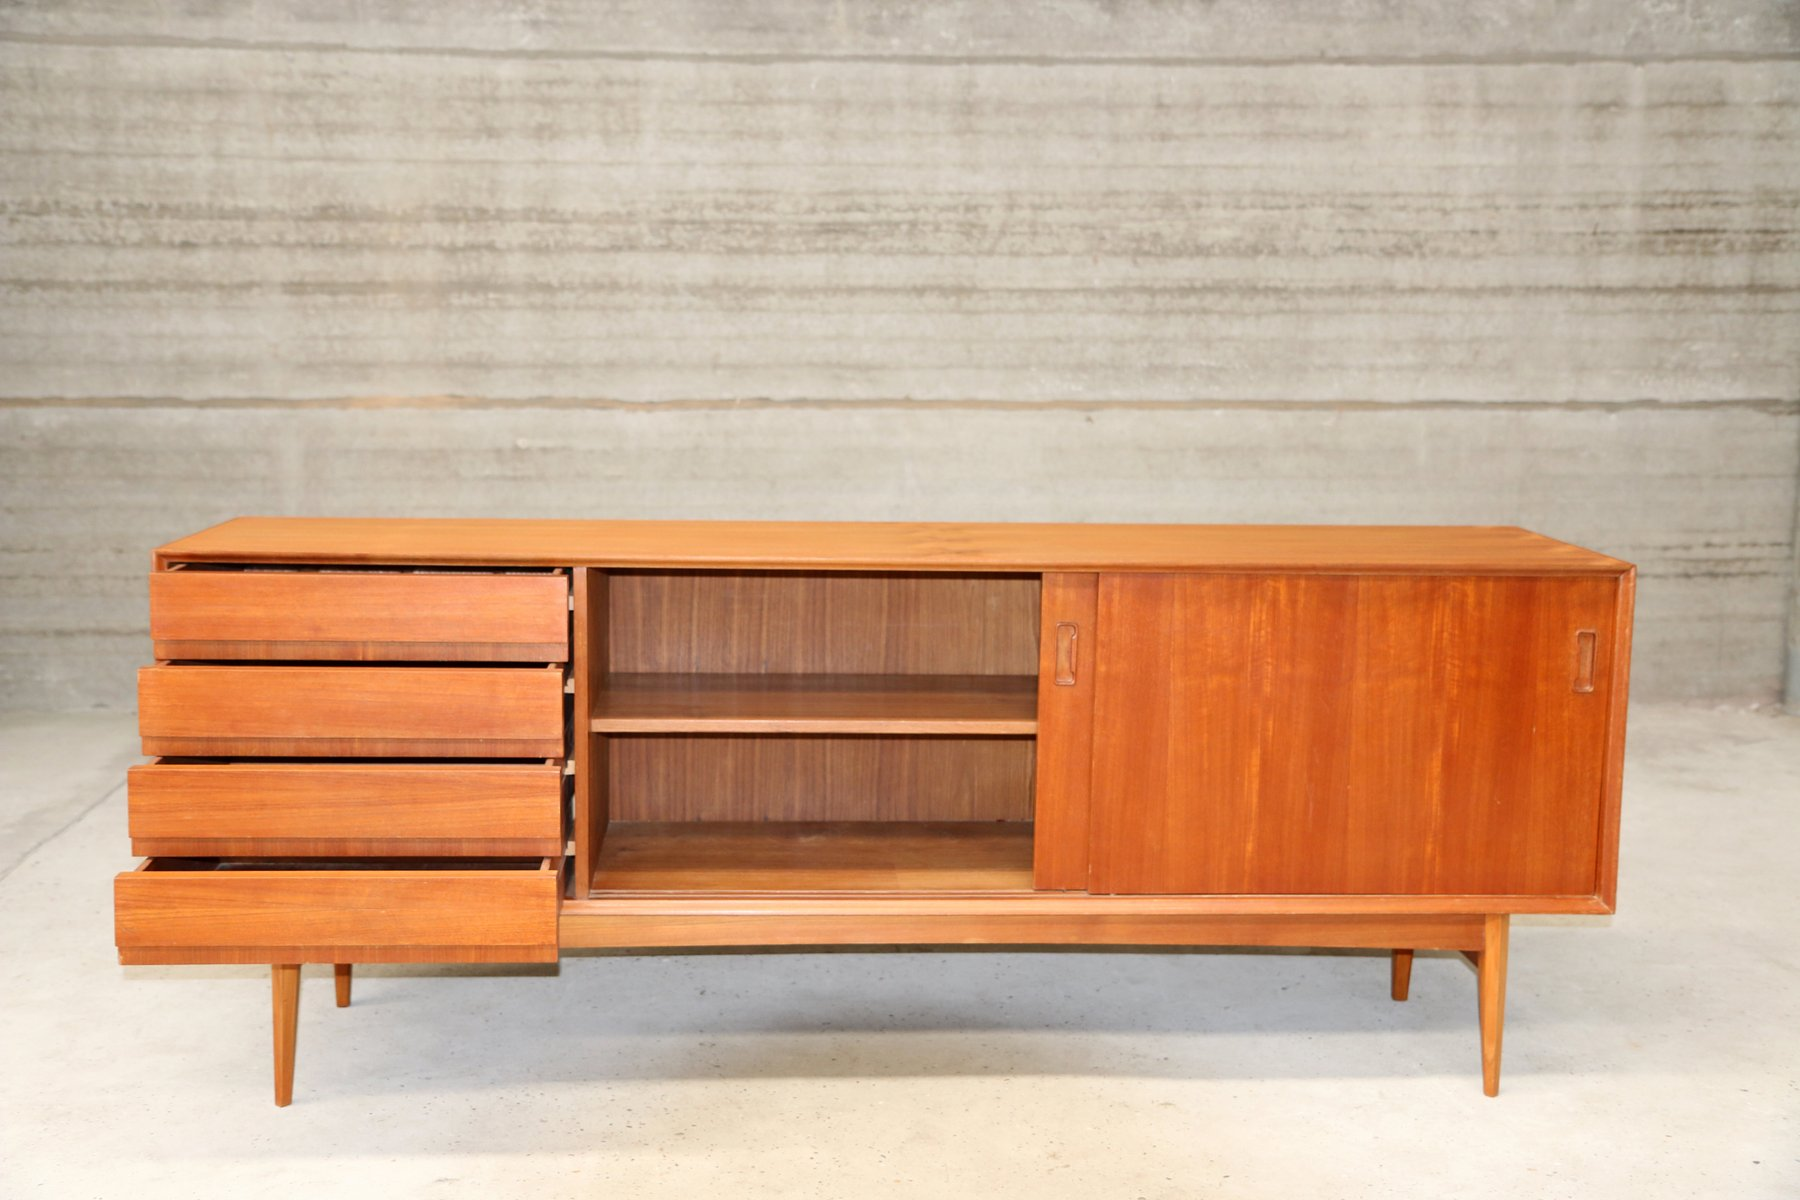 franz sisches sideboard mit schiebet ren aus holz bei pamono kaufen. Black Bedroom Furniture Sets. Home Design Ideas